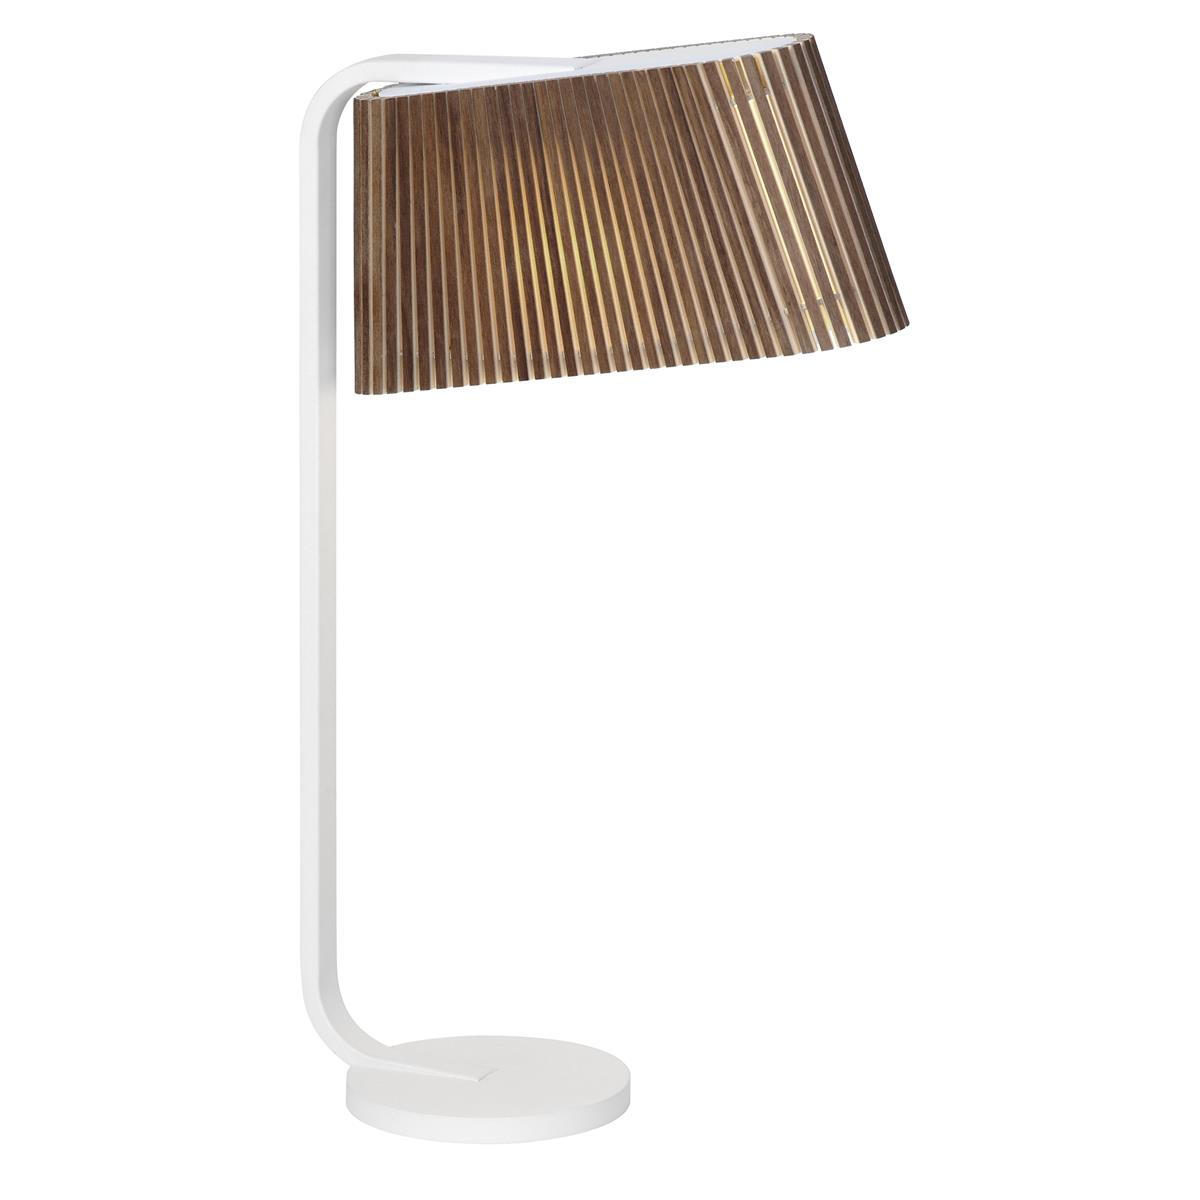 Secto 7020 Owalo Table lamp Walnut